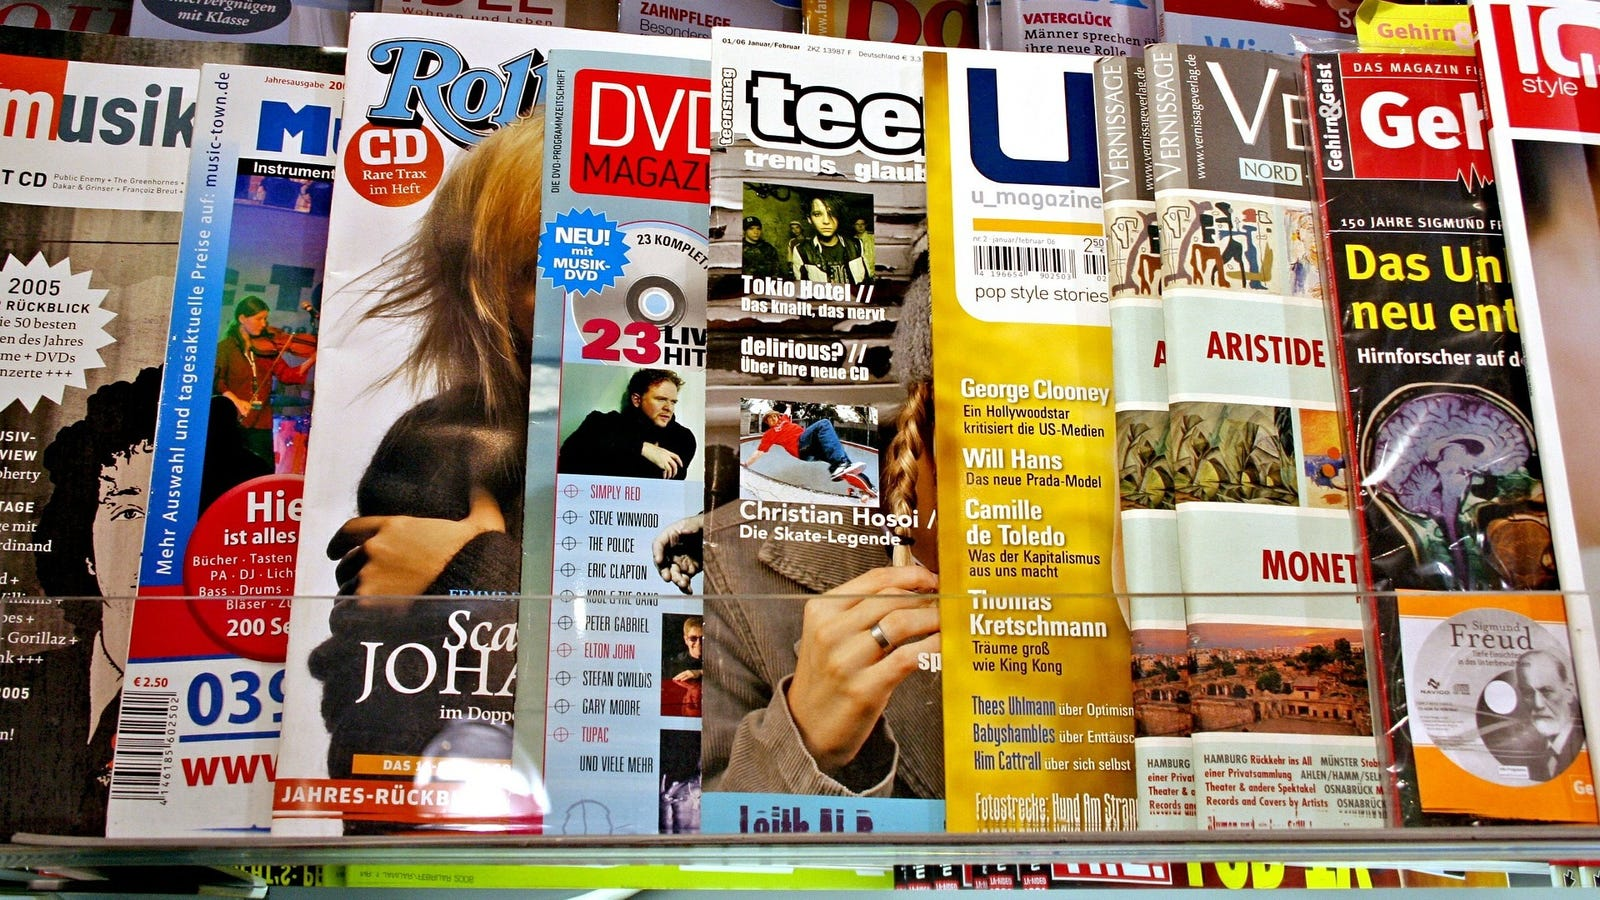 QnA VBage Your Library's Free Digital Magazines Are a Great Alternative to Apple's News+